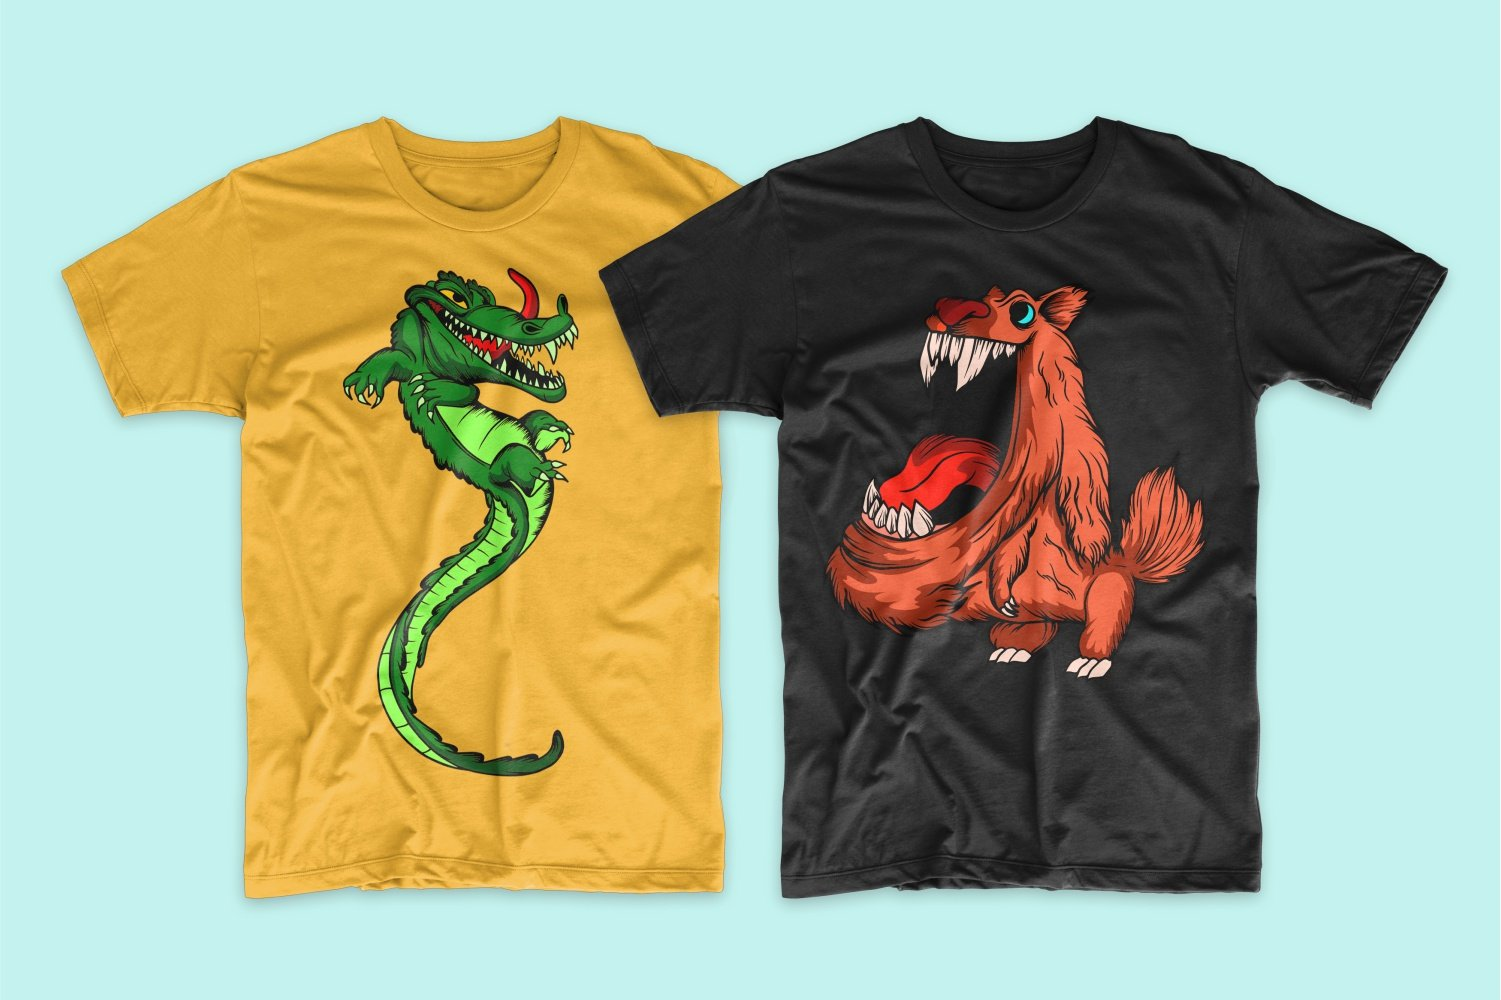 A yellow crocodile t-shirt with a long tail and a black one with a brown very fluffy monster.